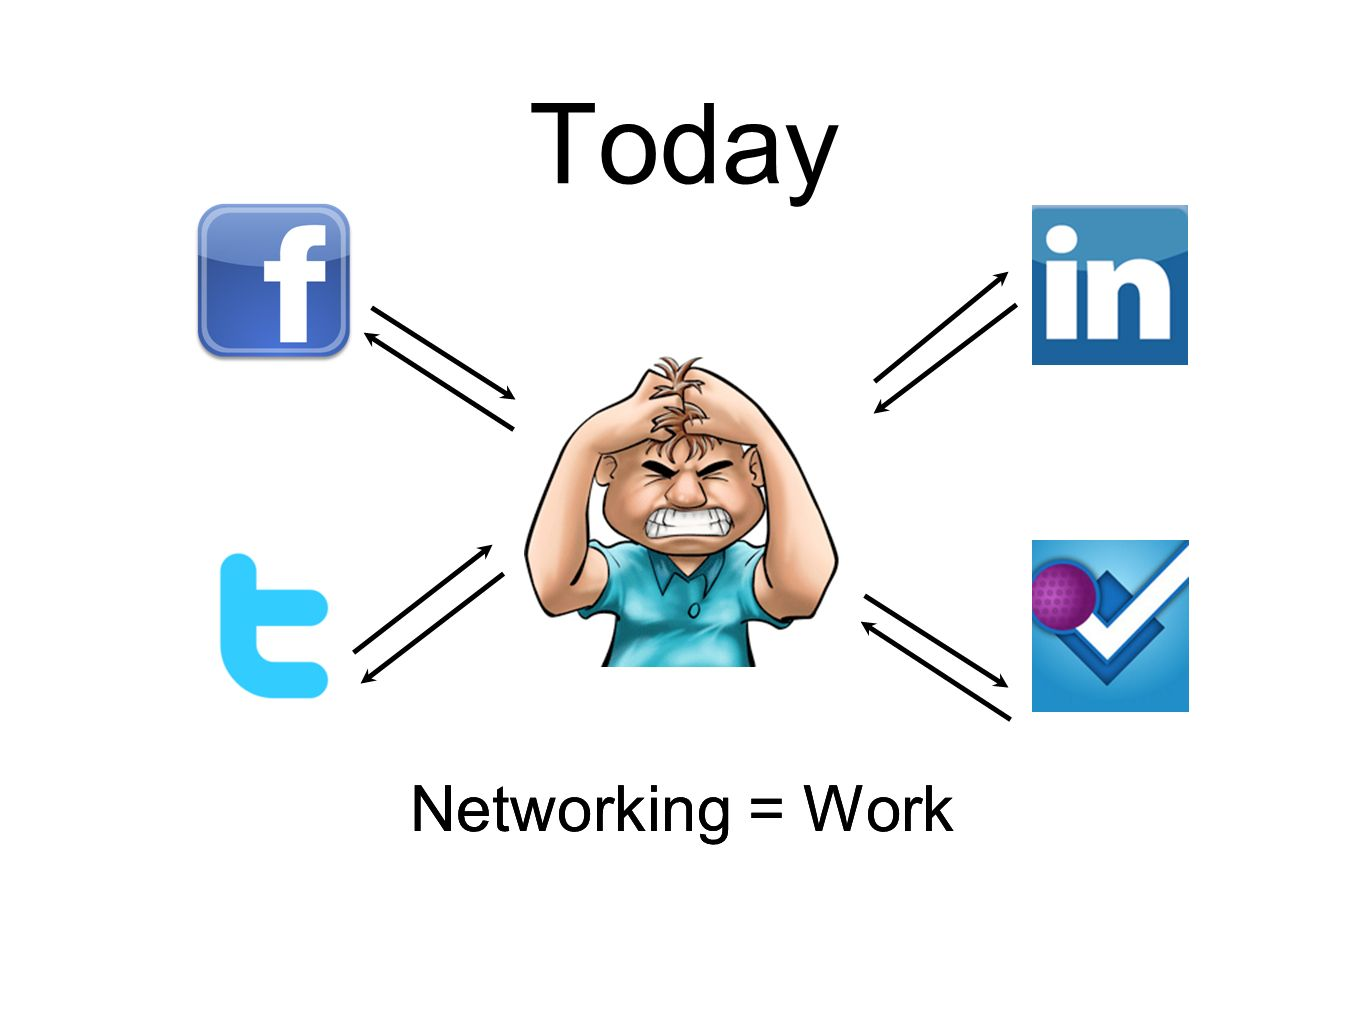 Today Networking = Work